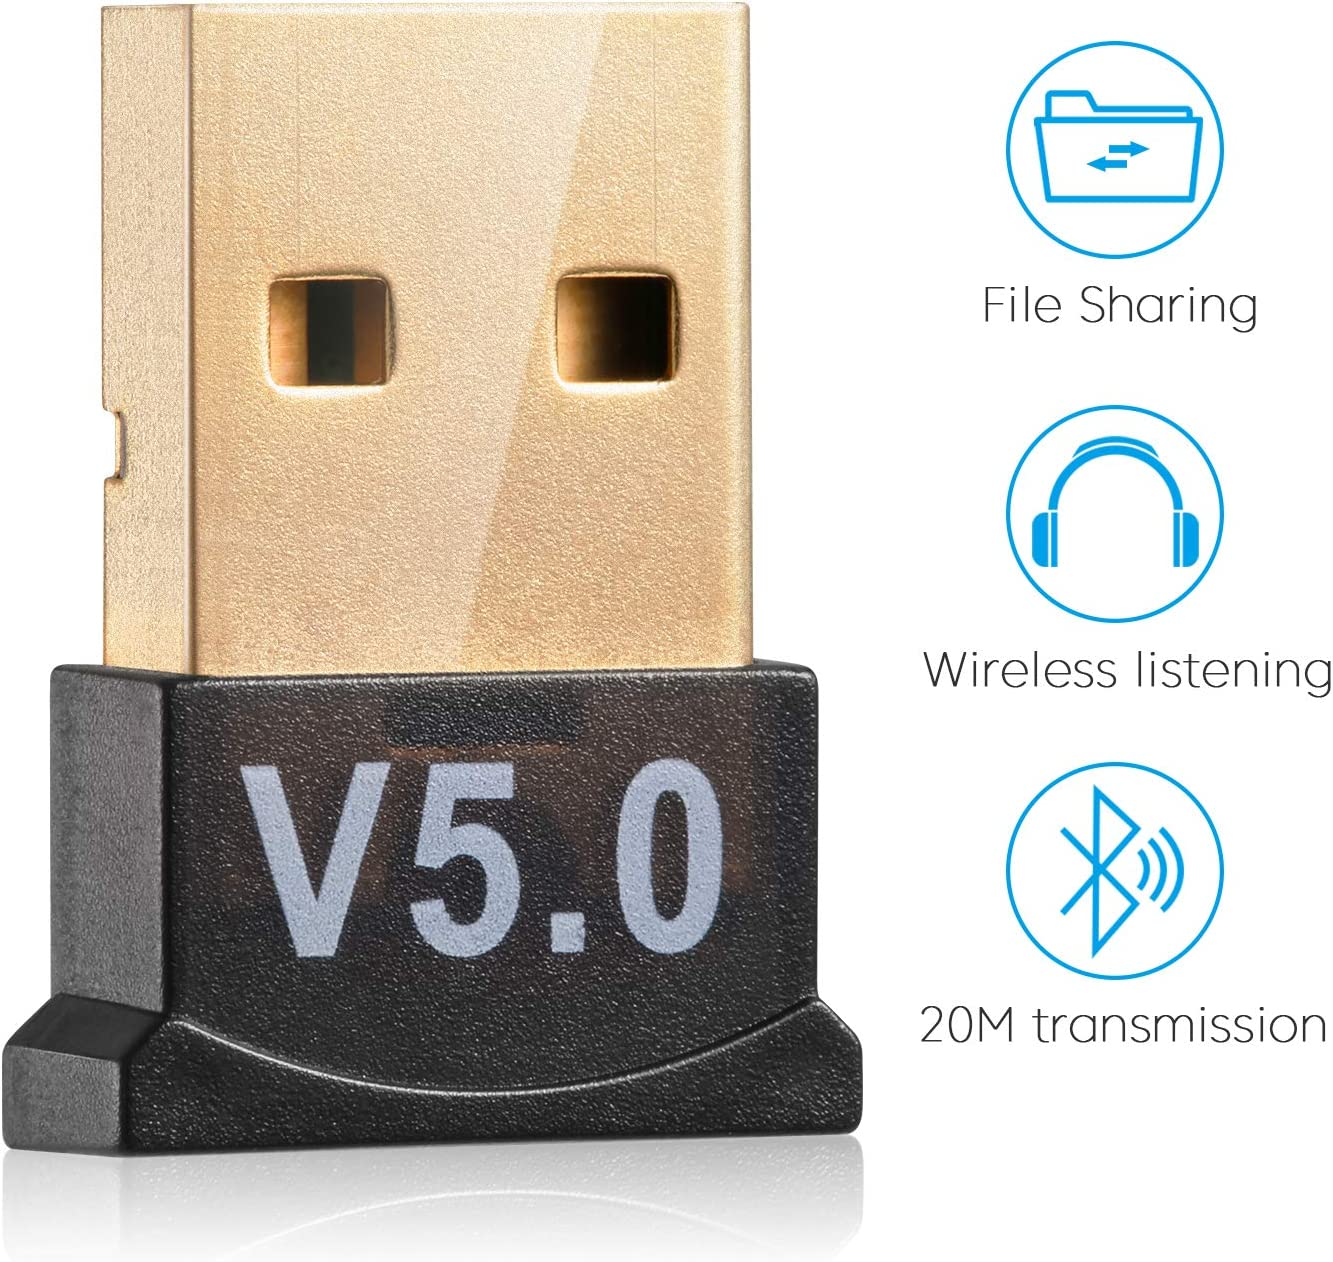 USB Bluetooth 5.0 Adapter for PC Win10/8.1/8/7/XP/Vista, Desktop Computer Bluetooth Dongle Receiver/Transmitter for Laptop Support to Connect Headset, Mouse, Keyboard, Printer, Speaker